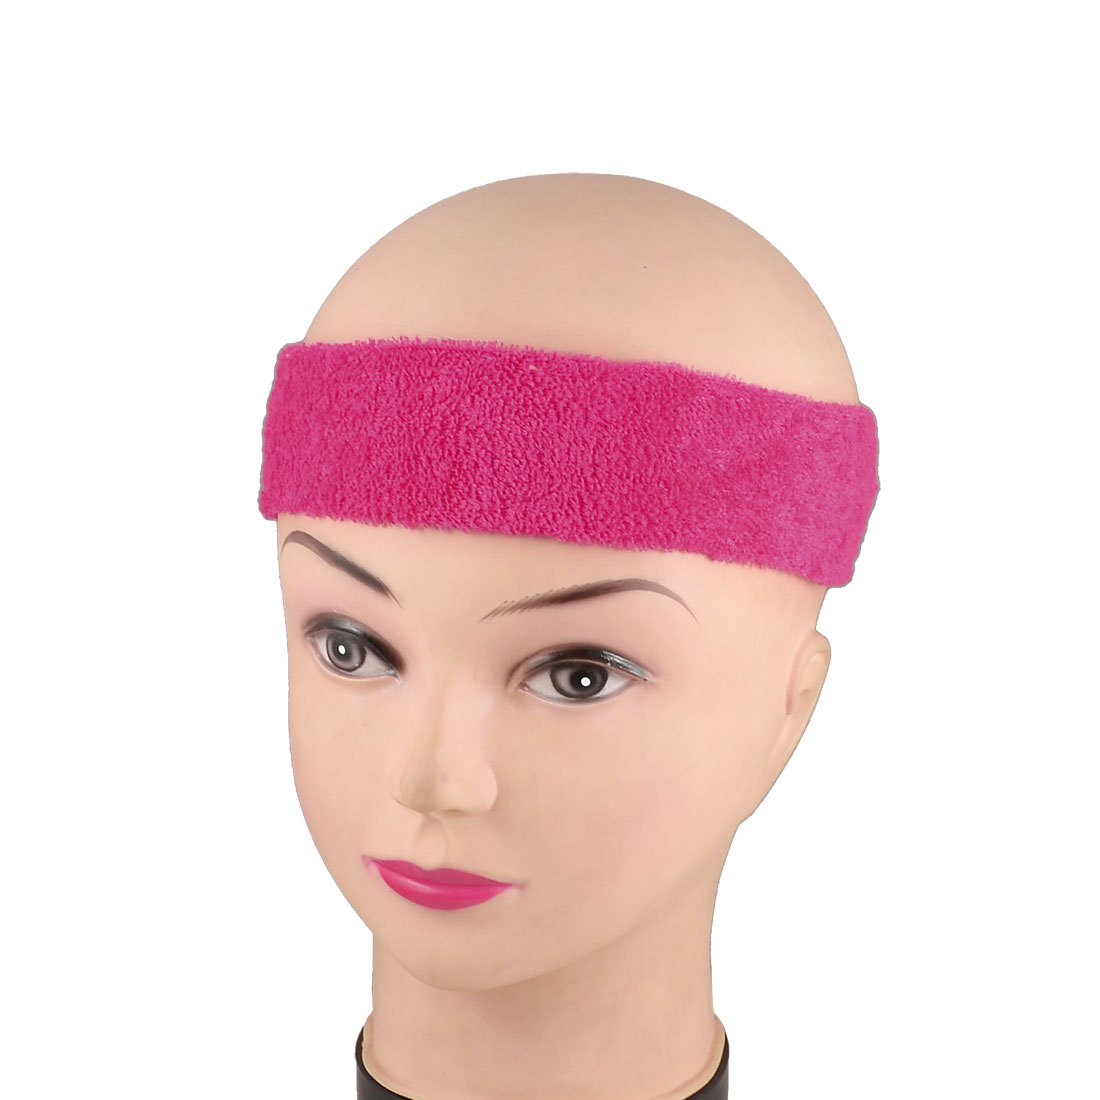 2 Pcs Athletic Sports Fuchsia Terry Elastic Fabric Headband Hair Binding Band for Ladies